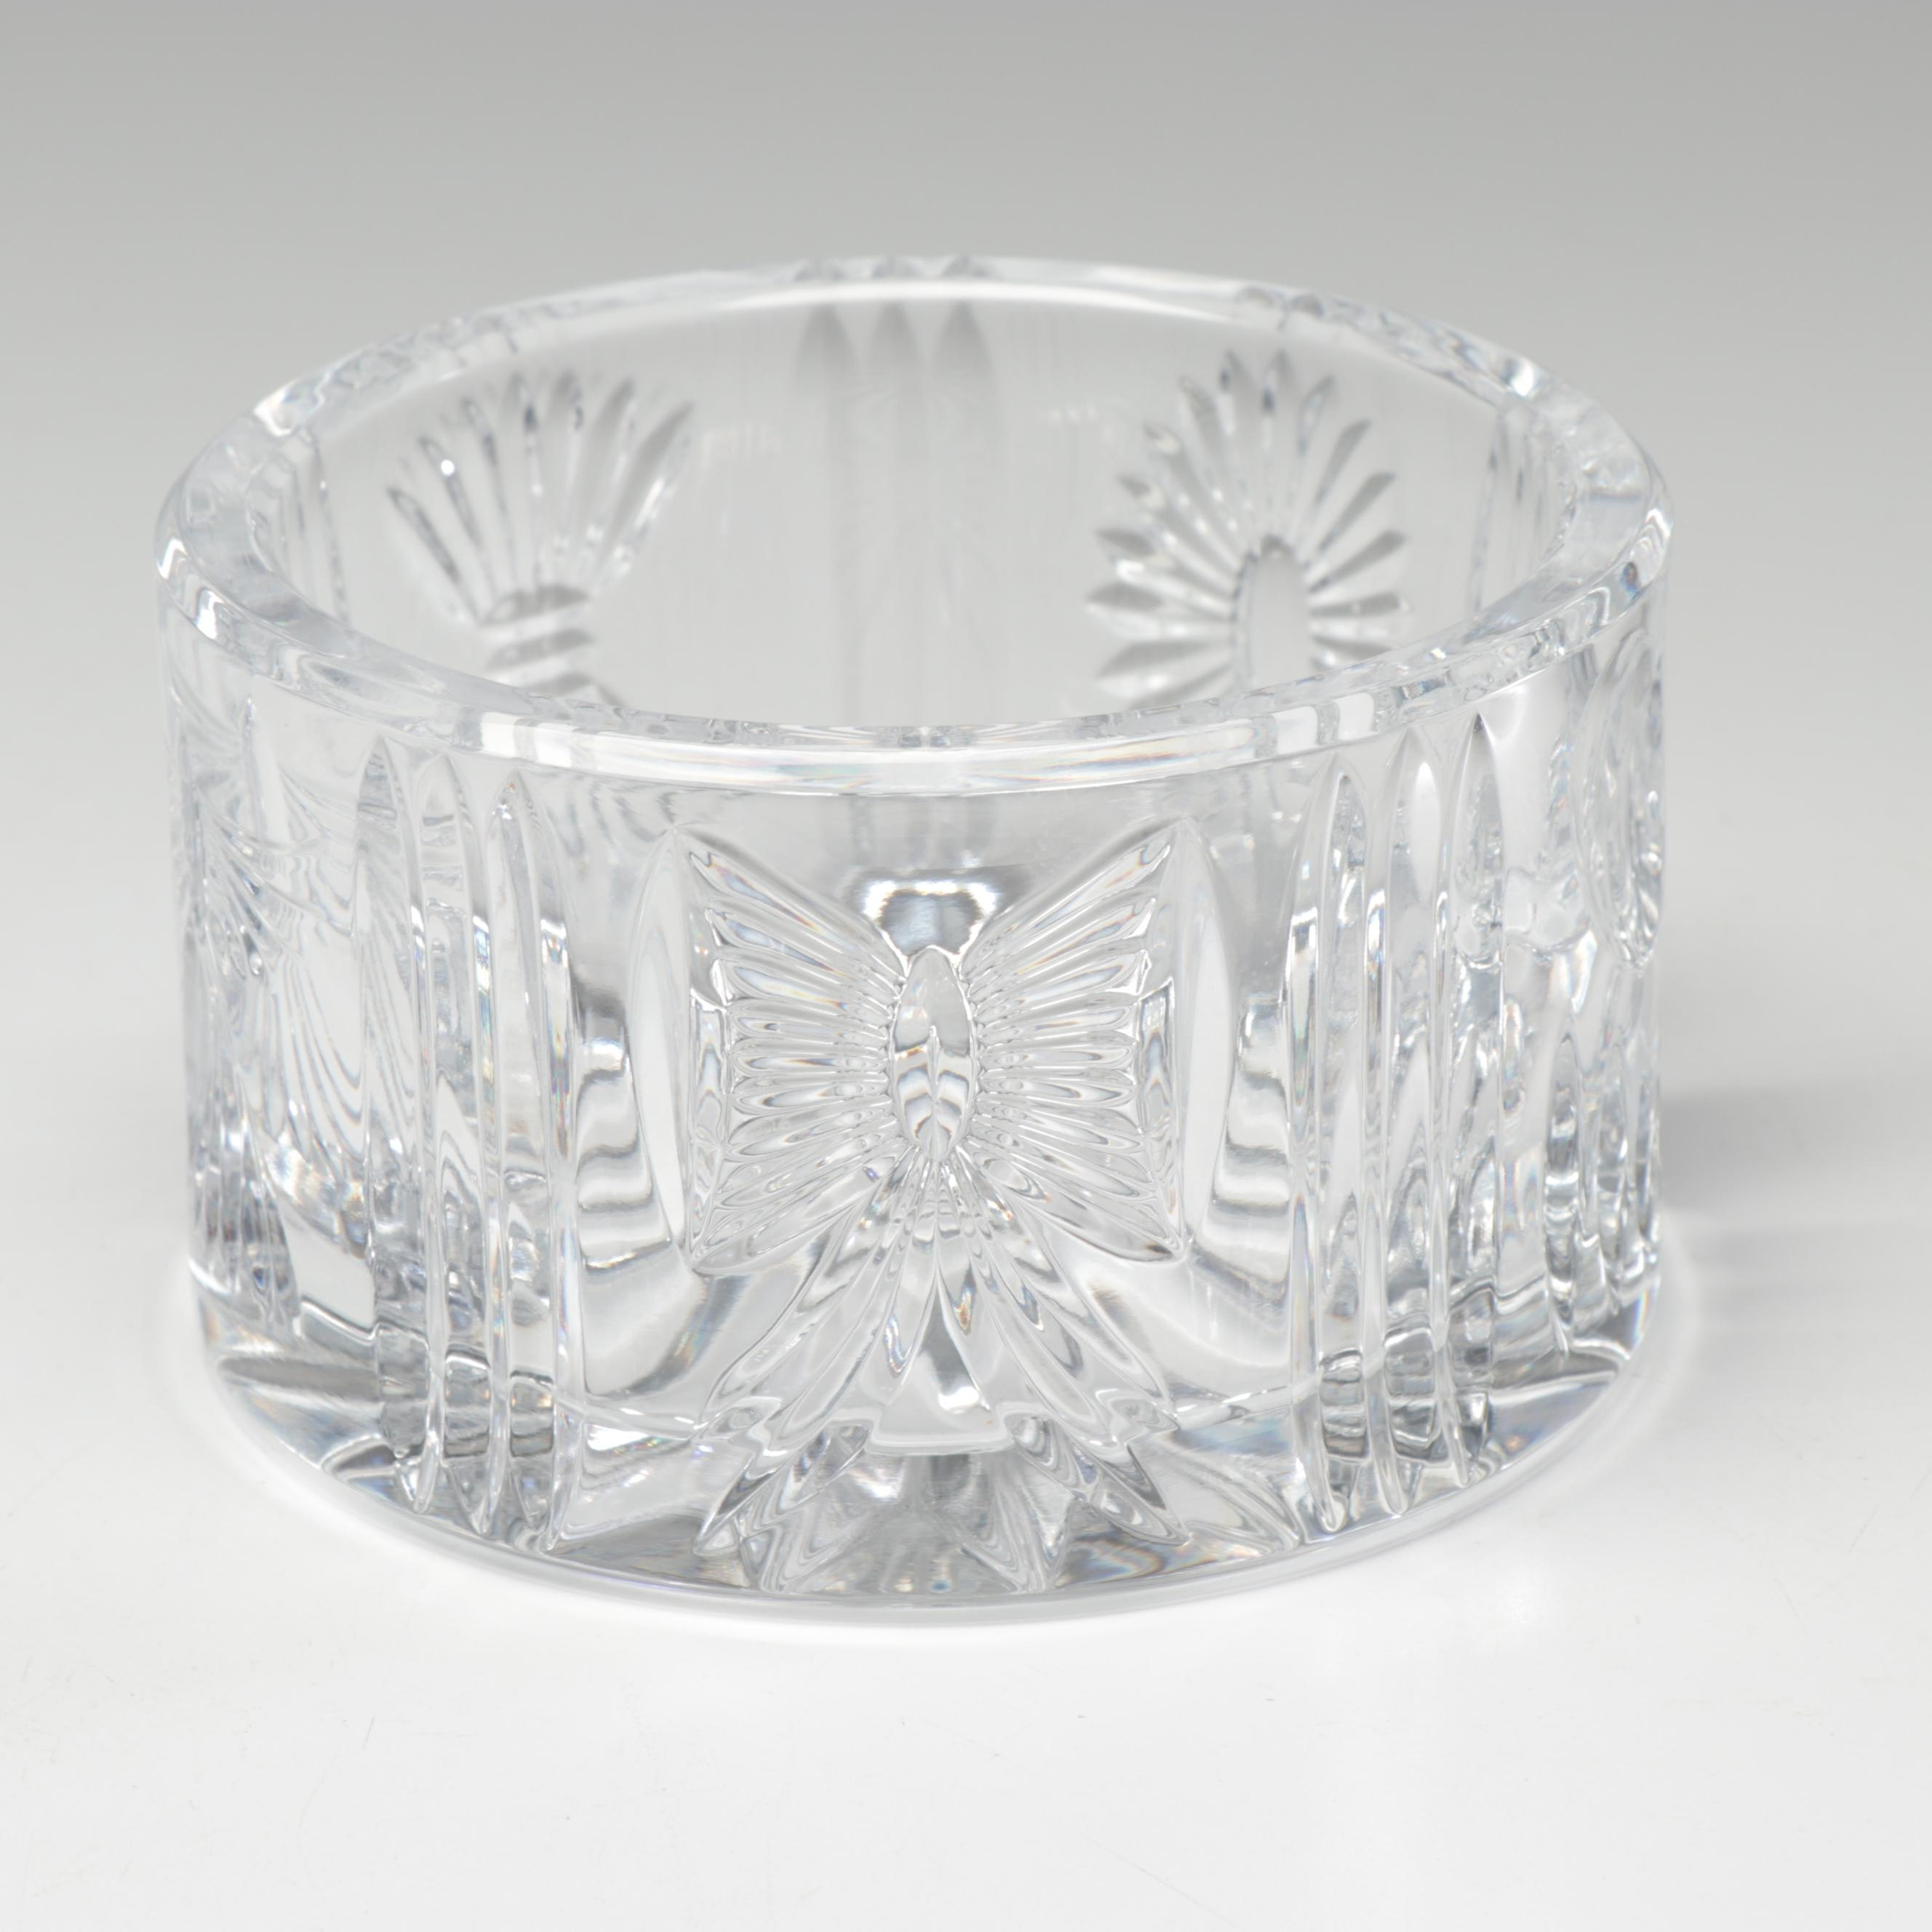 Waterford Crystal Millennium Collection Champagne Bottle Coaster